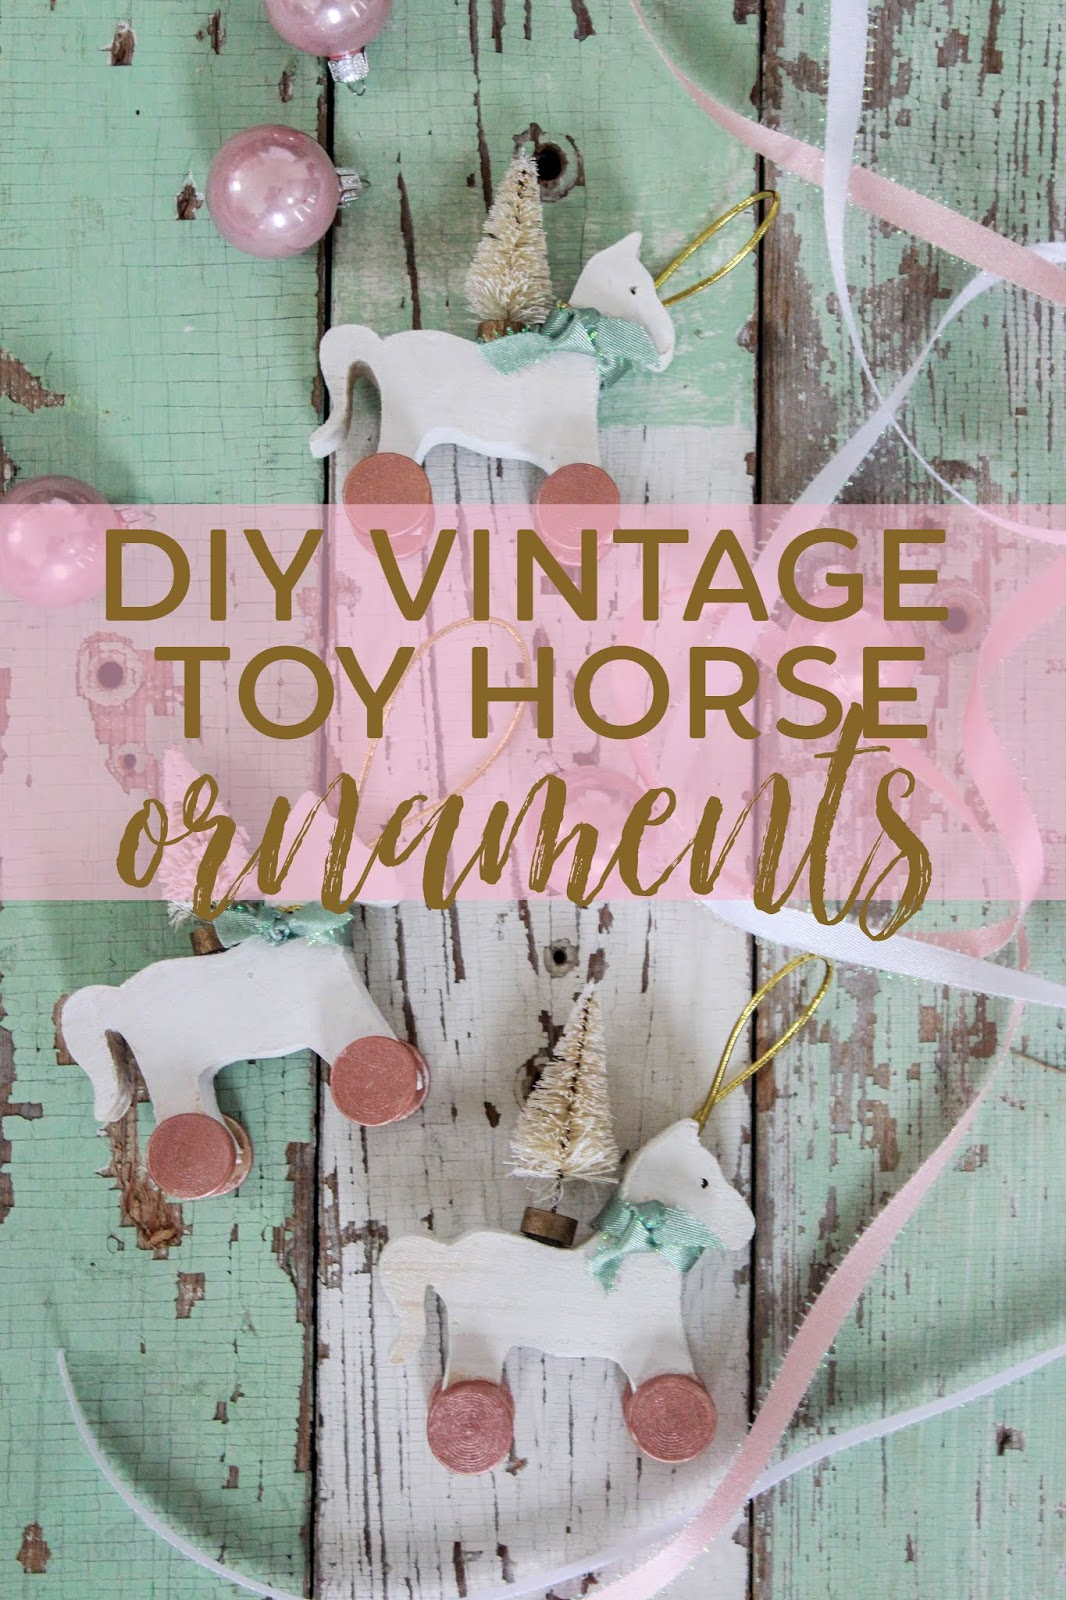 DIY Vintage Toy Horse Ornaments